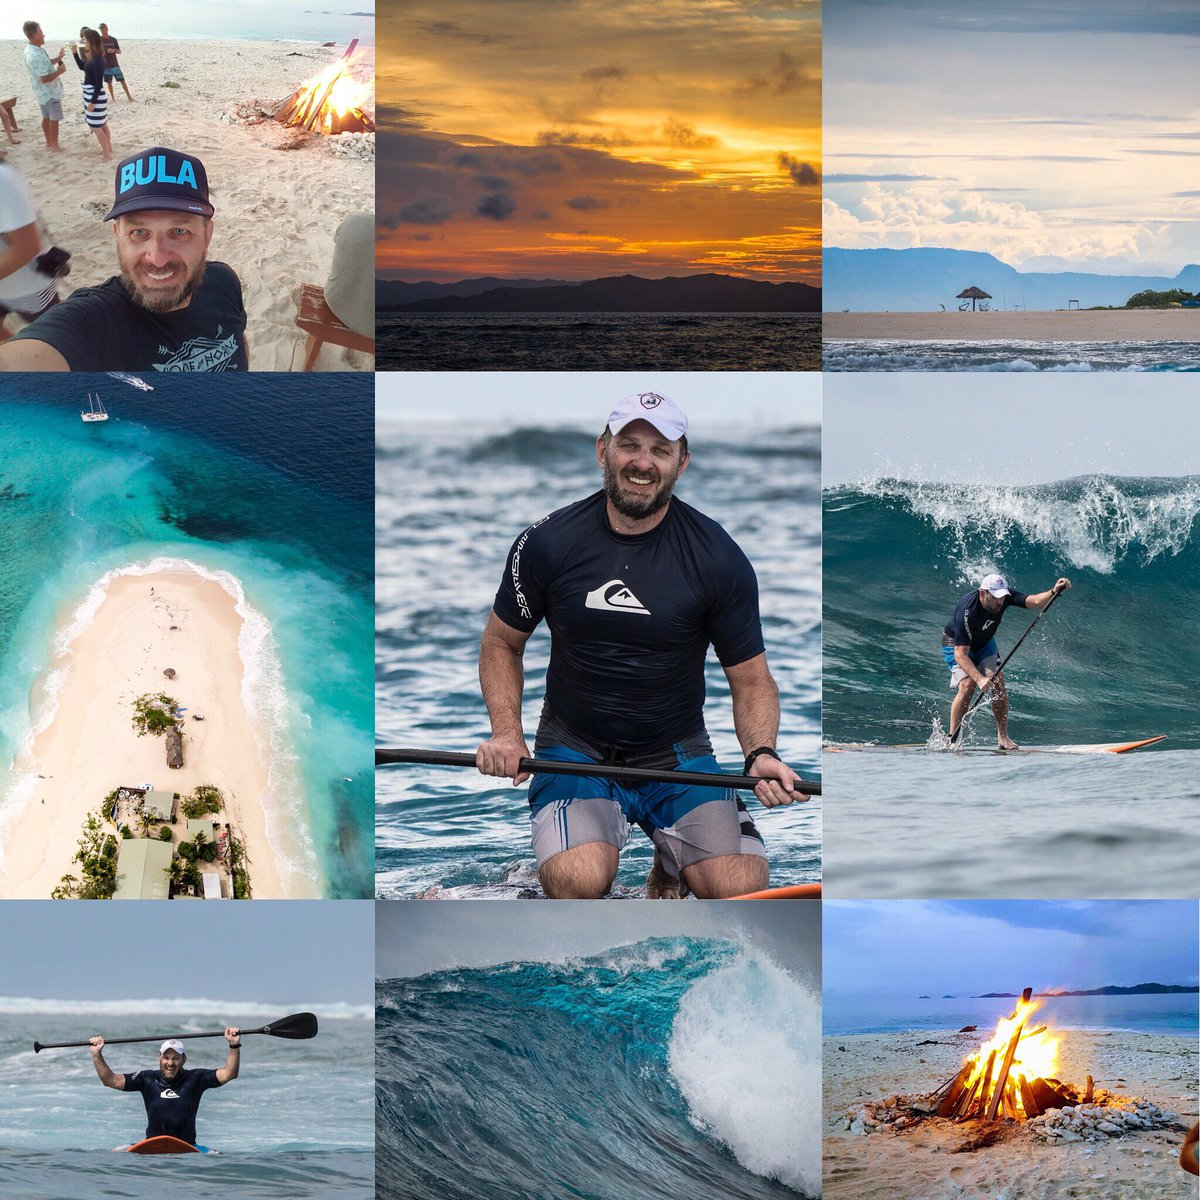 Perfect week in paradise @Namotu_Island #Fiji #kalamakamp, paddleboarding and surfing in South Pacific waves #SUP #paddleboard #surf #travel #saltlife photo credit @Joliphotos<br>http://pic.twitter.com/XfZVvQzS7o